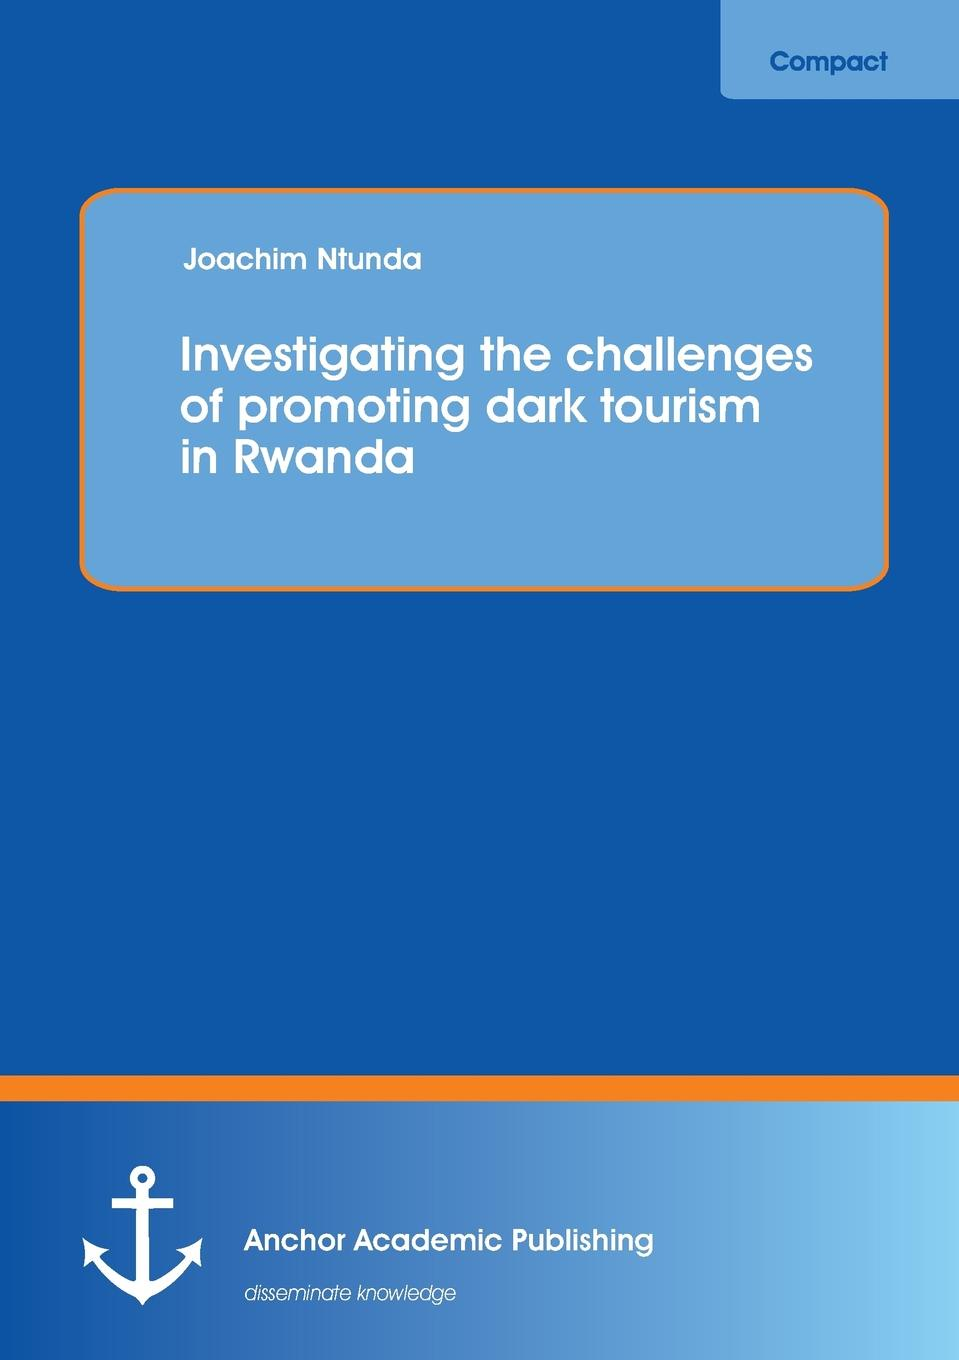 Joachim Ntunda Investigating the Challenges of Promoting Dark Tourism in Rwanda in the dark